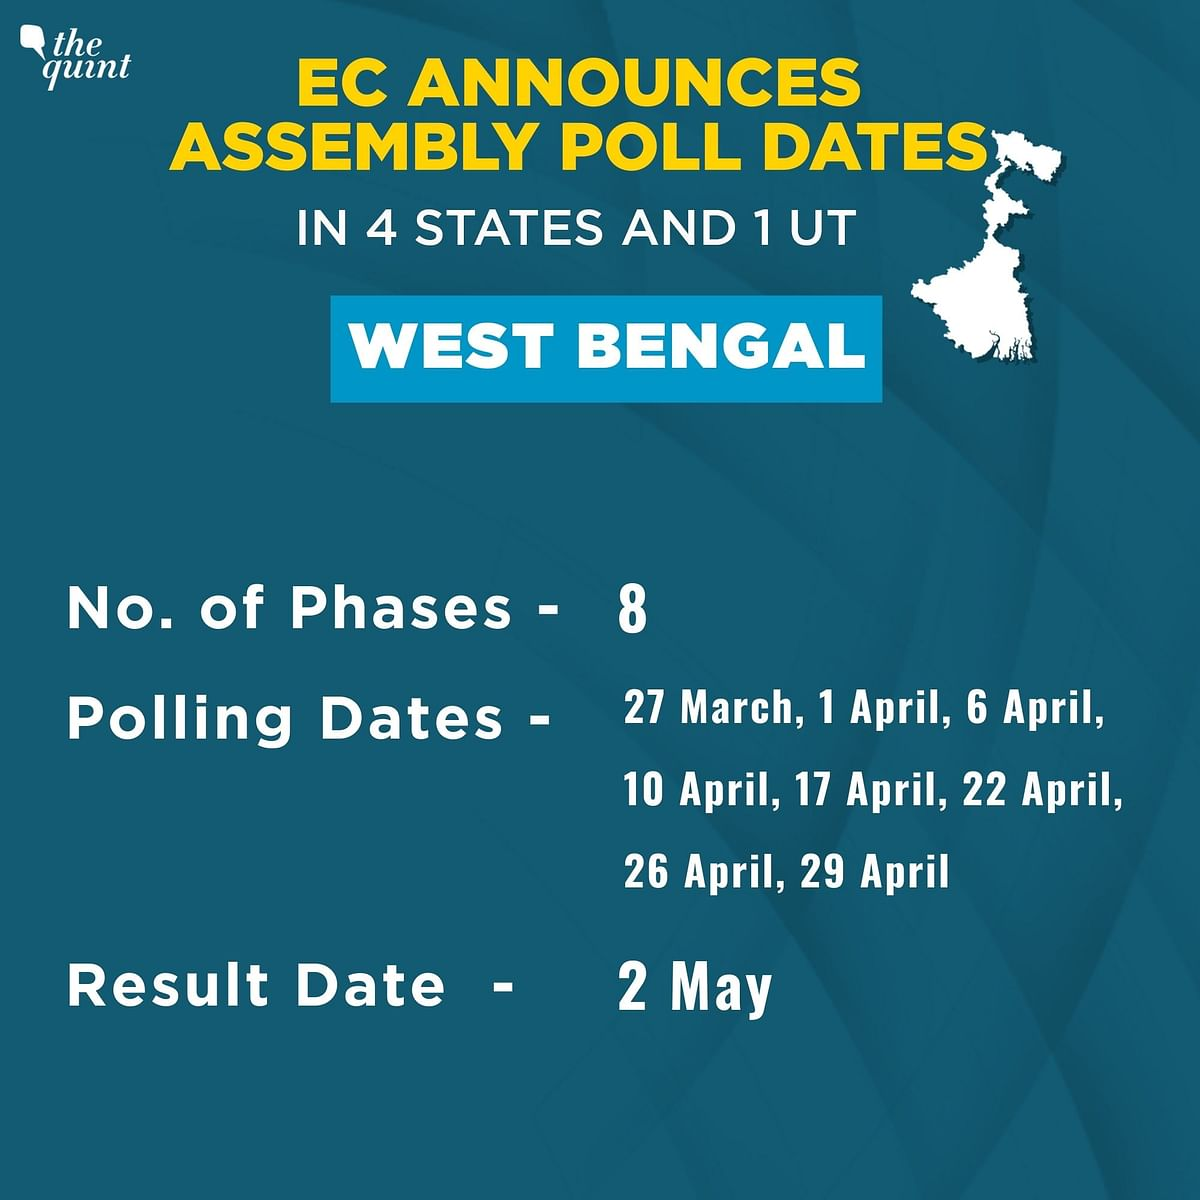 Assembly Polls: Counting of Votes In WB, 3 Other States on 2 May